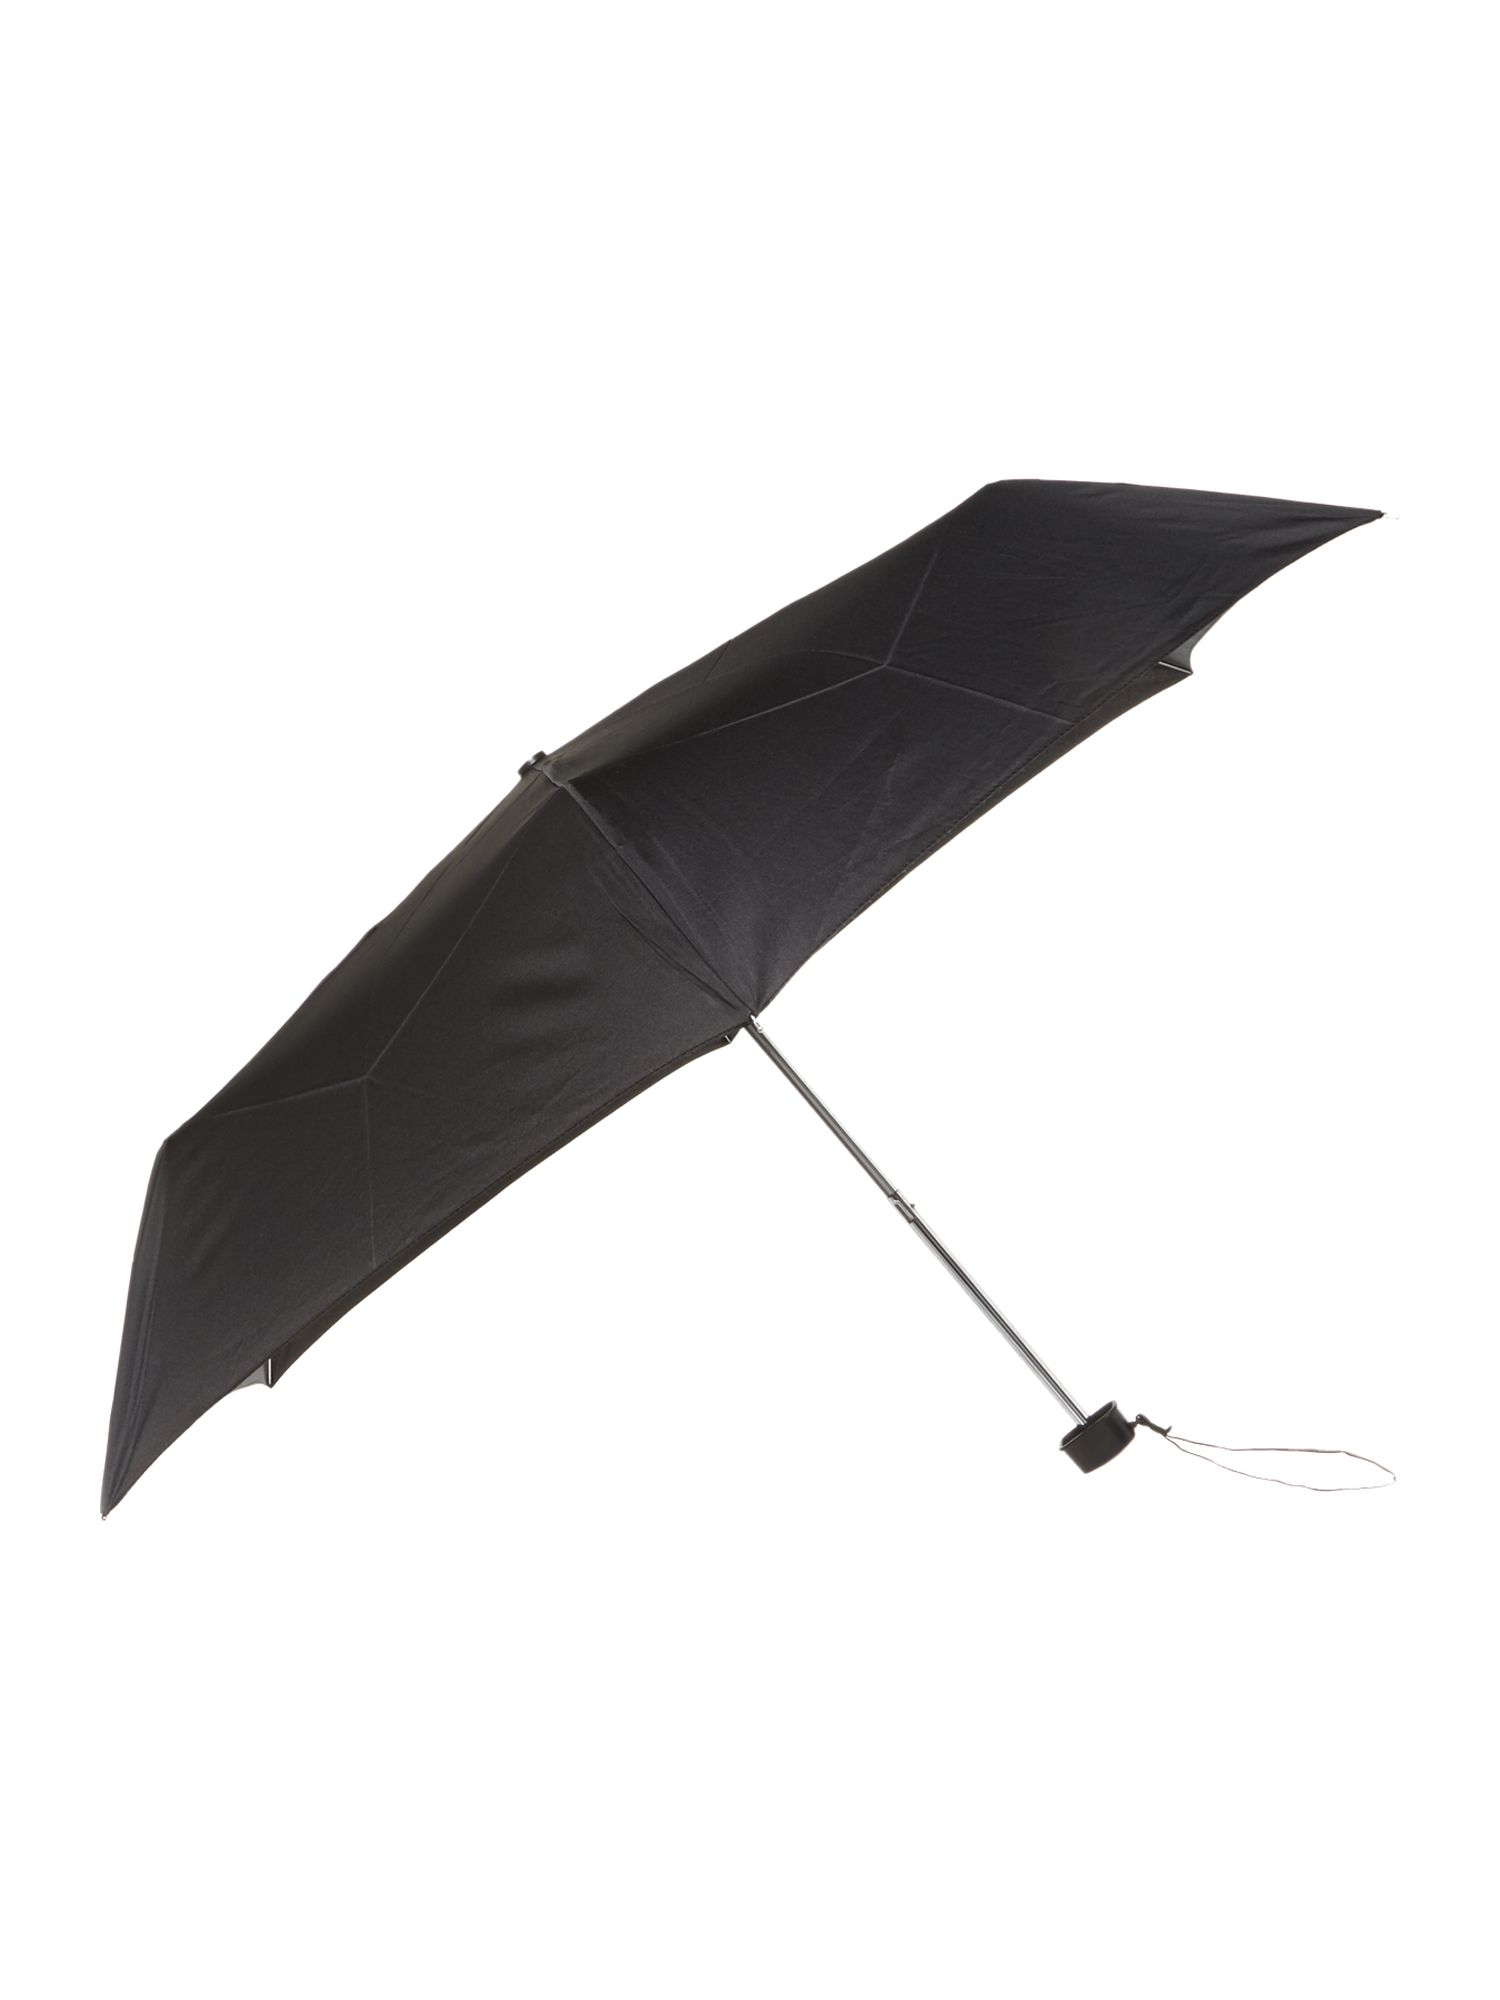 Miniflat umbrella